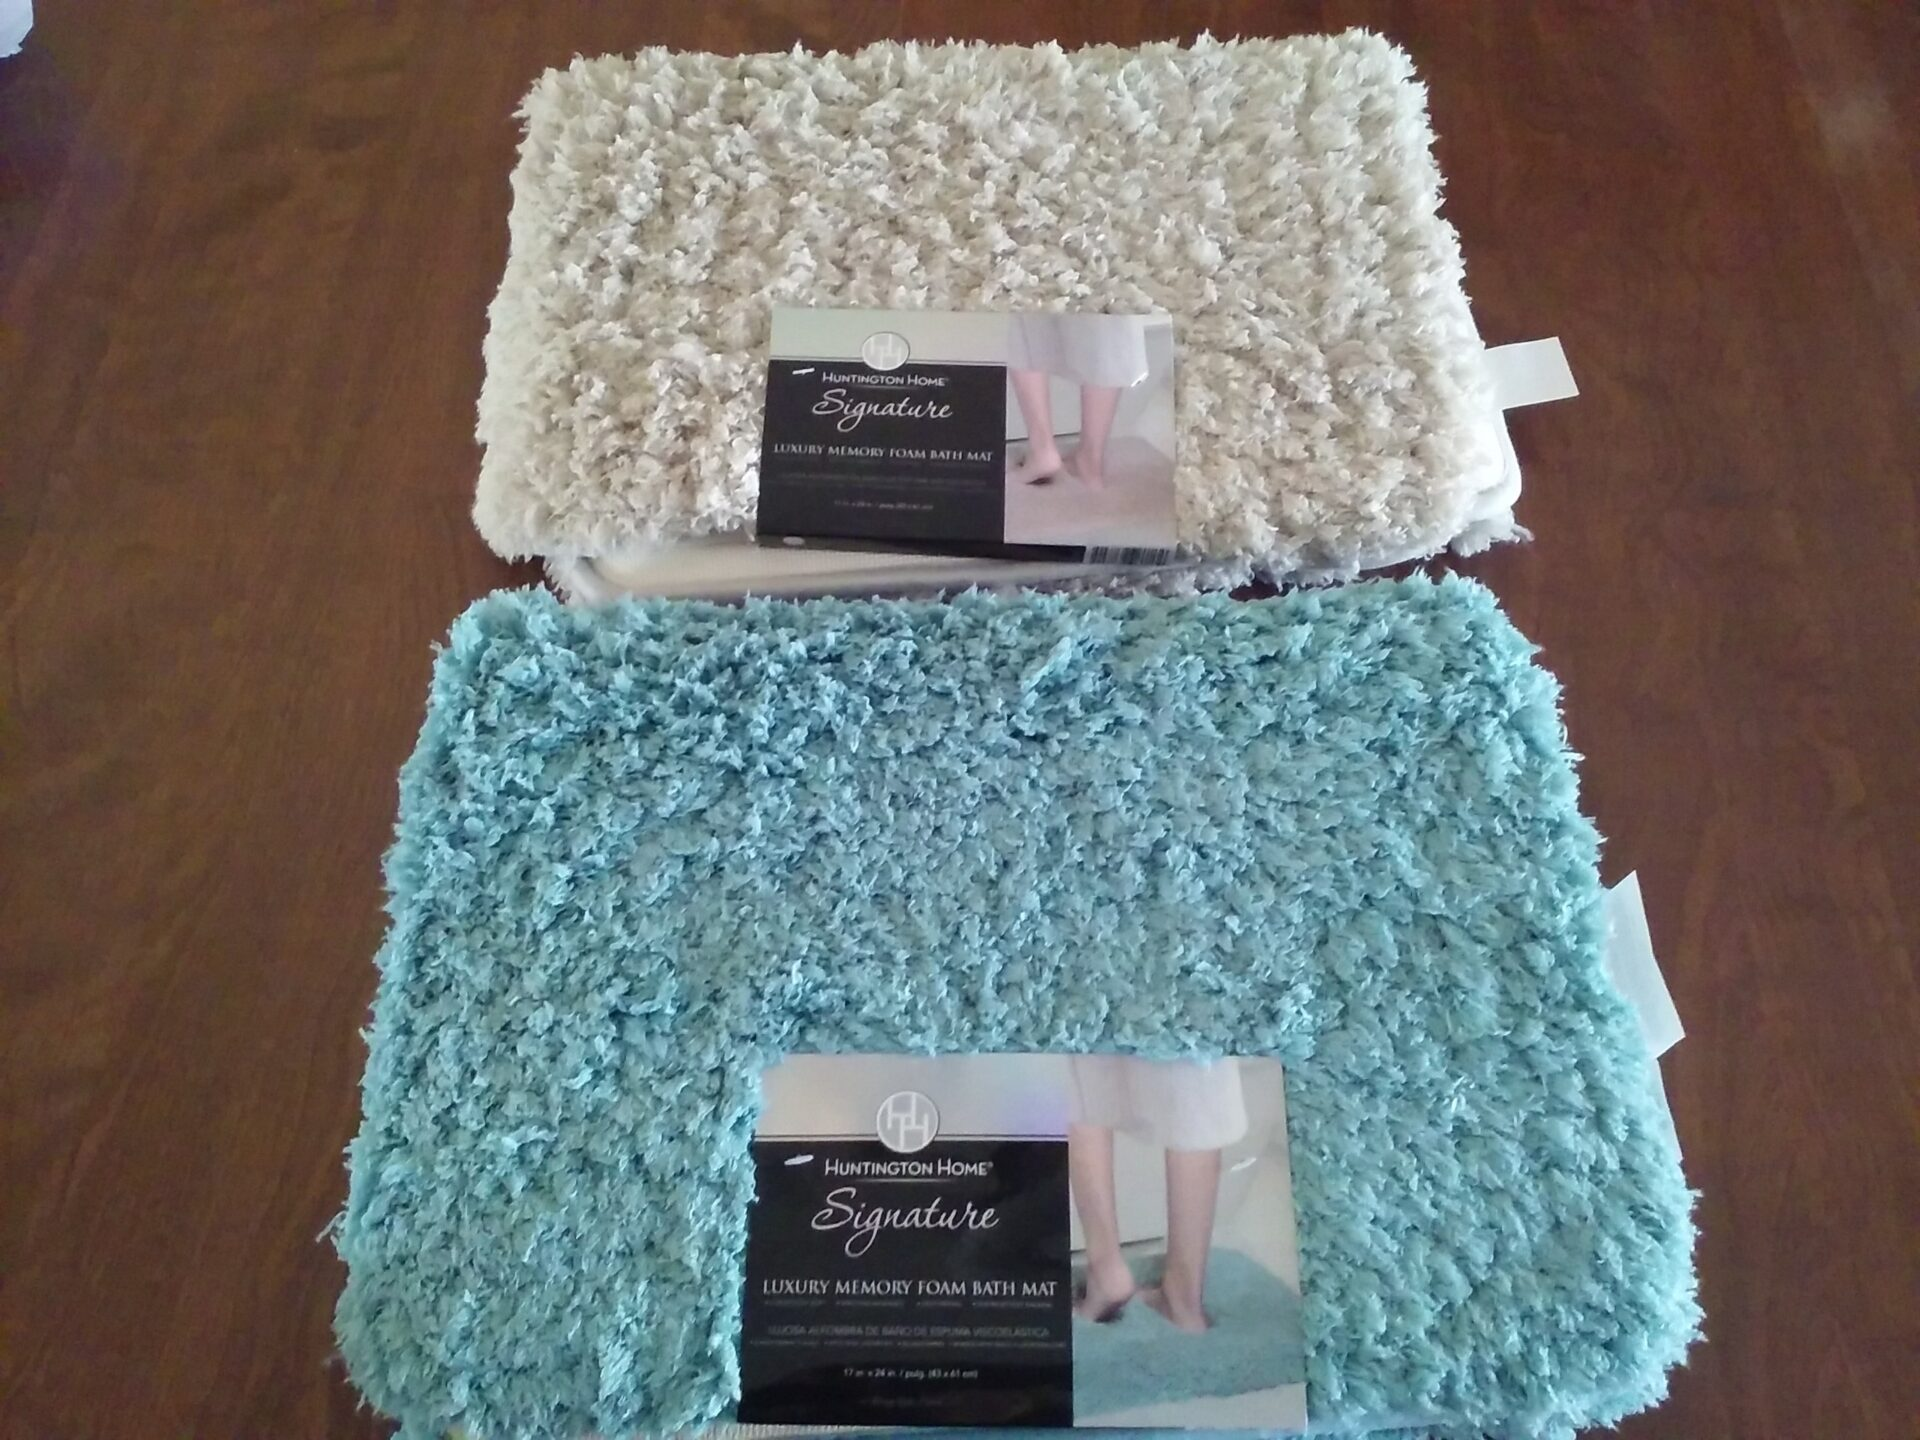 huntington home signature luxury memory foam bath mat aldi reviewer